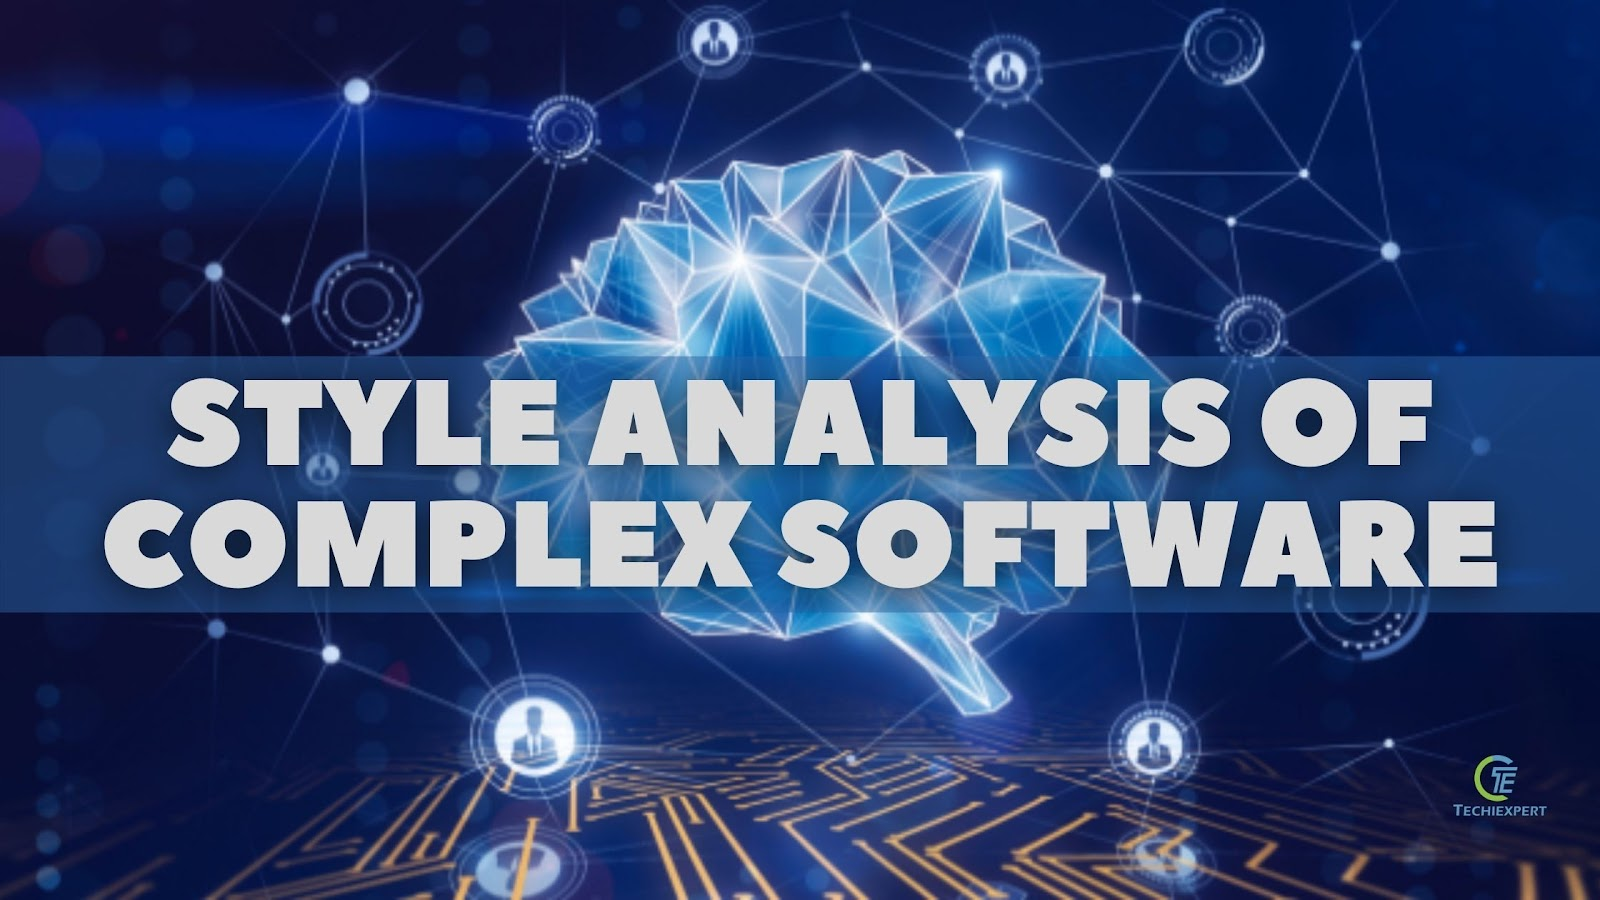 Style analysis of complex software